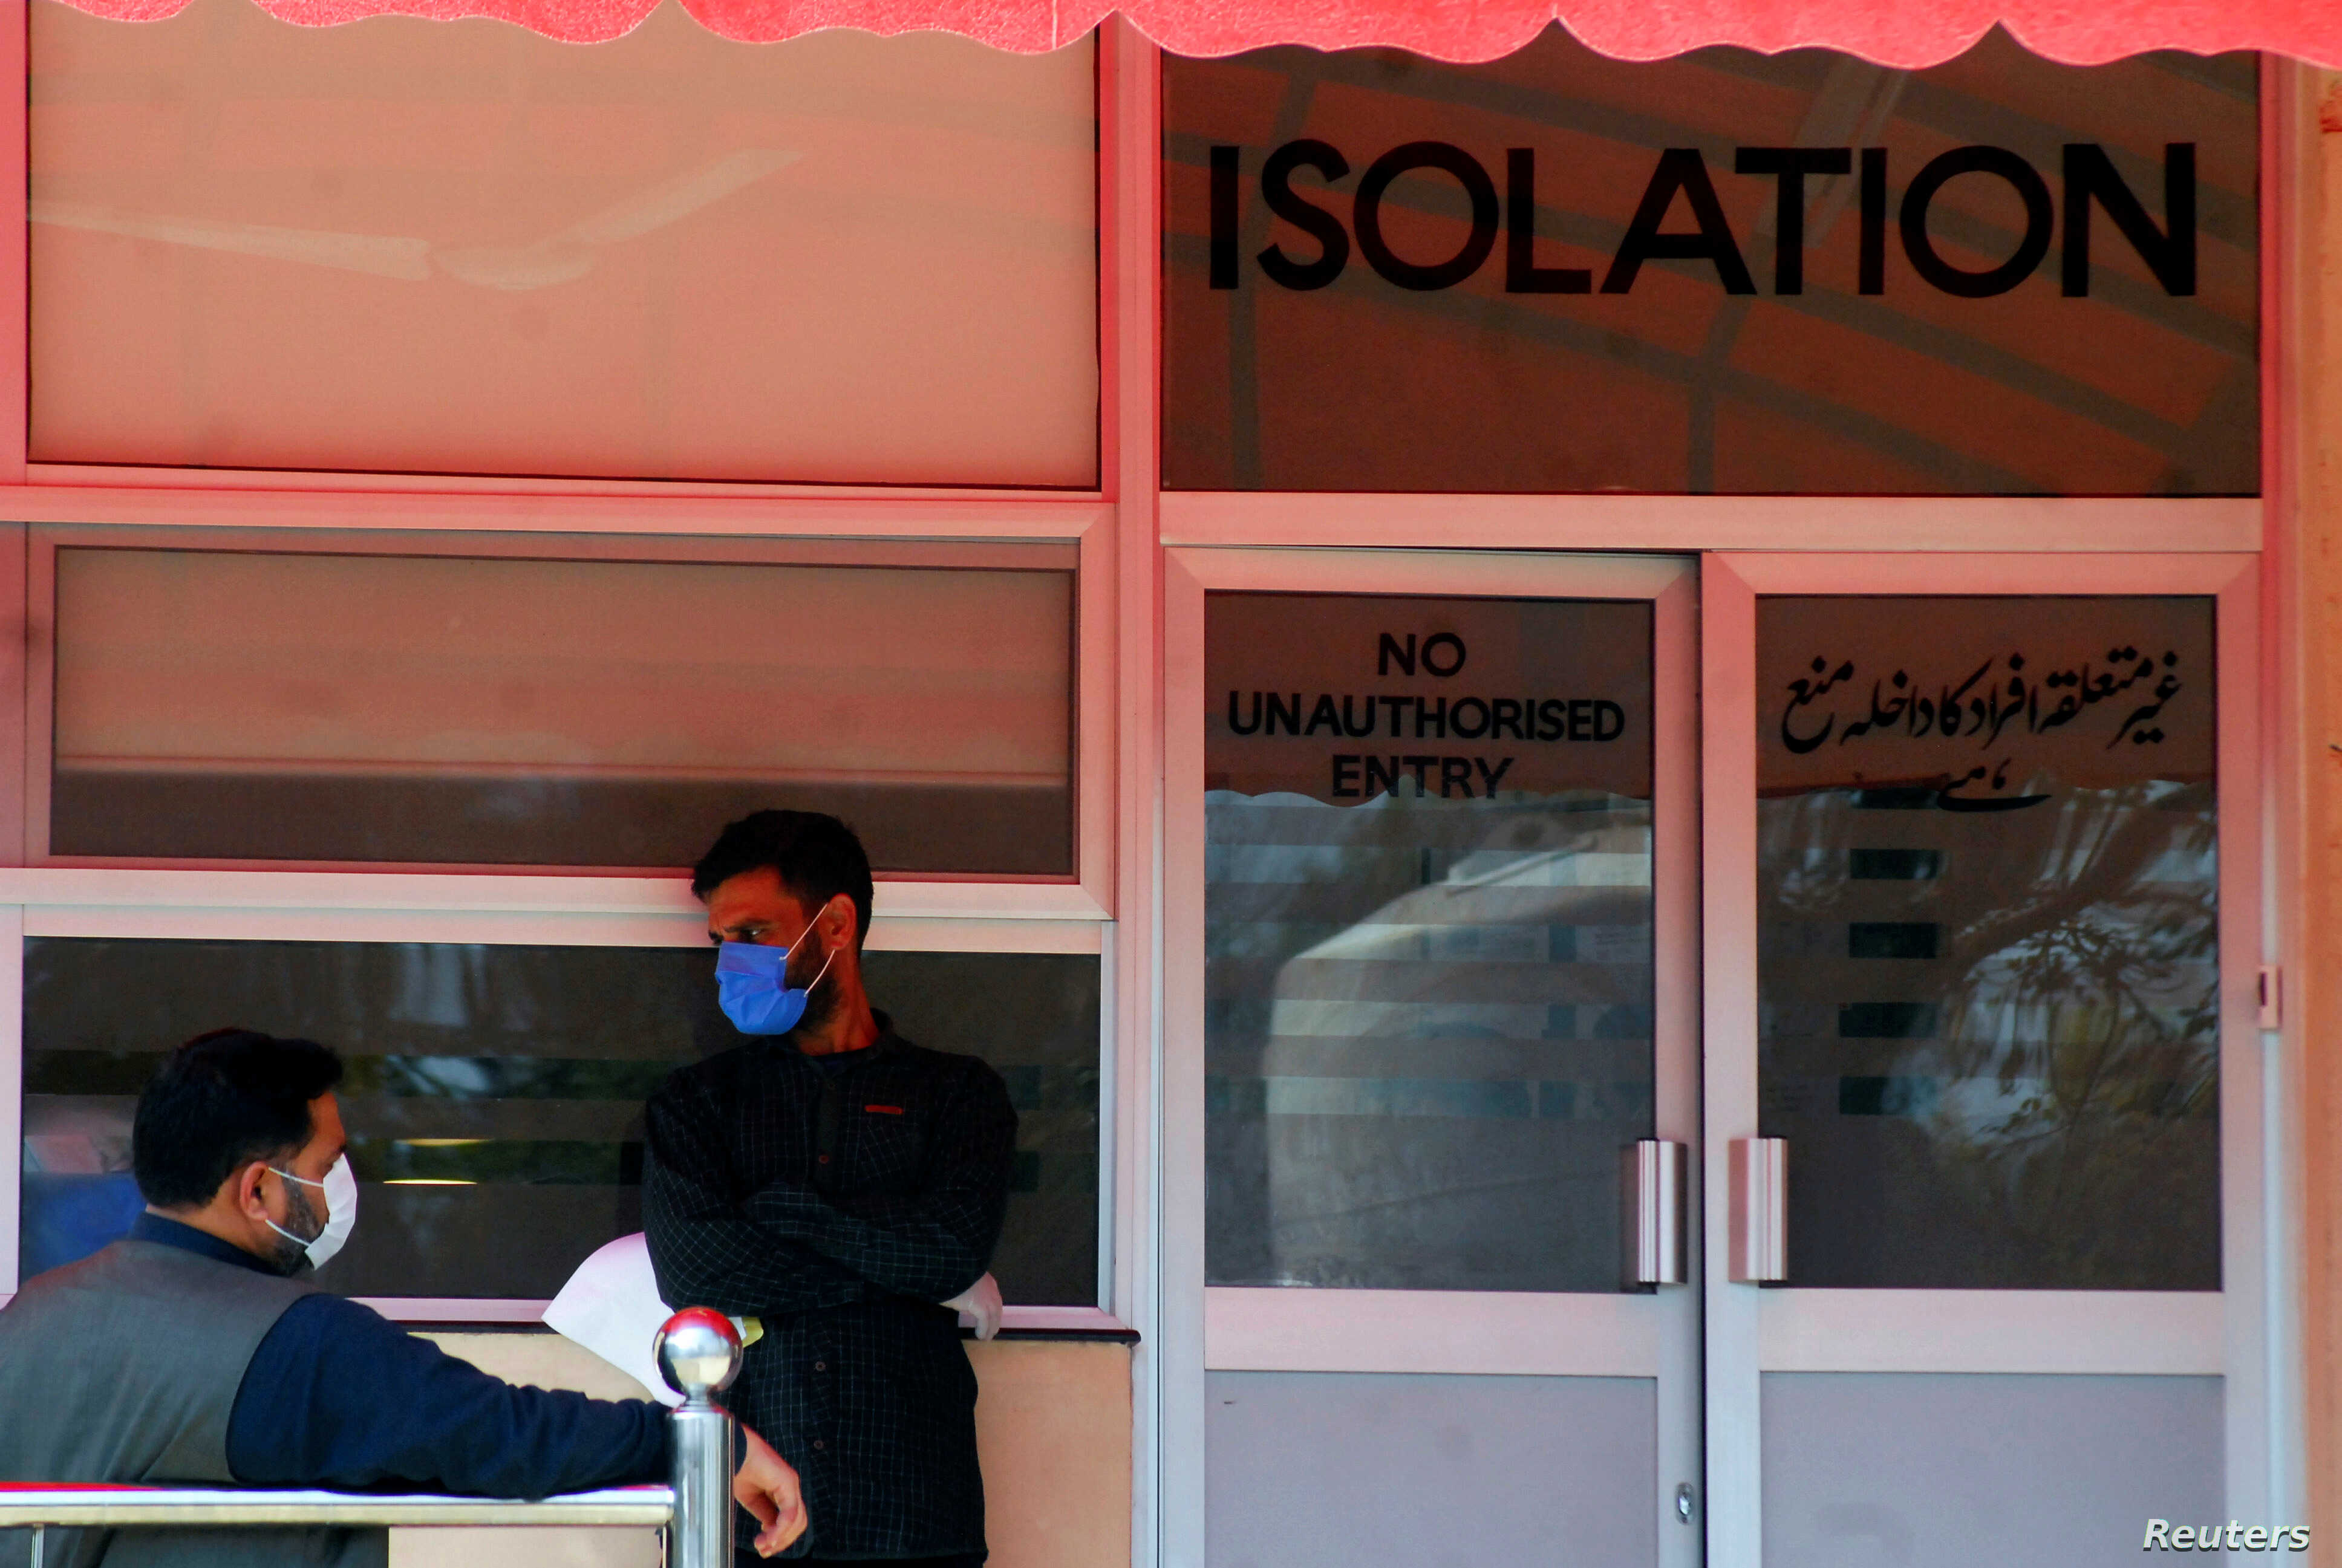 Men wear protective mask as a preventive measure against coronavirus, as they stand outside the Isolation ward at the Pakistan Institute of Medial Sciences (PIMS) in Islamabad, Pakistan March 15, 2020. REUTERS/Waseem Khan NO RESALES. NO ARCHIVES